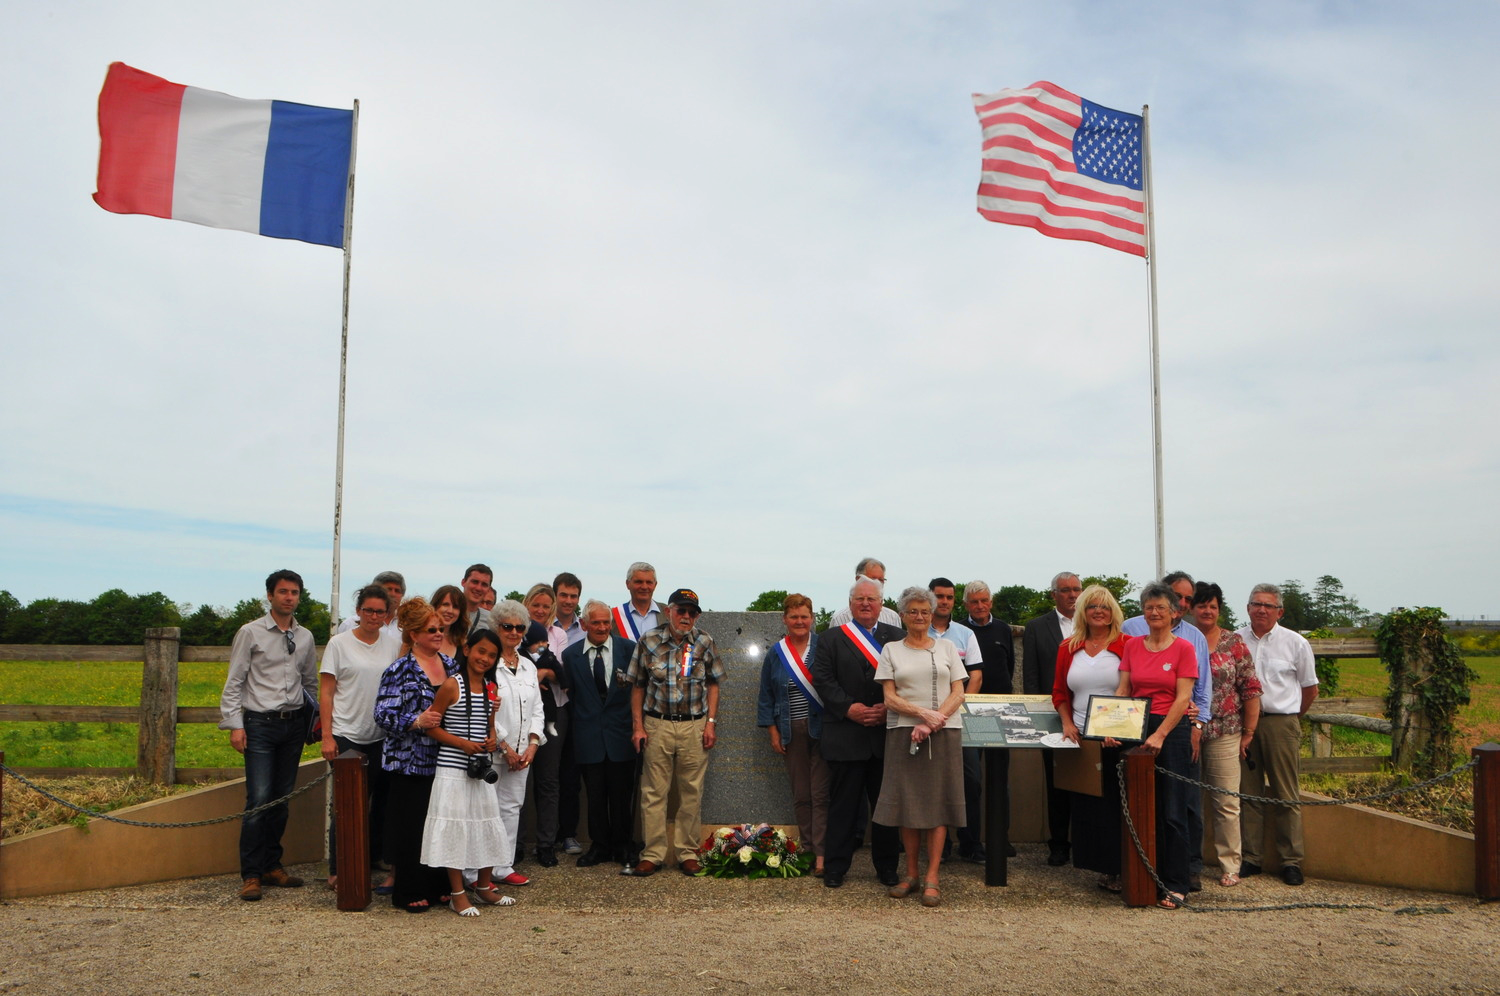 The ceremony in Catz - the place where Herb Simmons (Papa) helped build an airstrip 70 years ago.